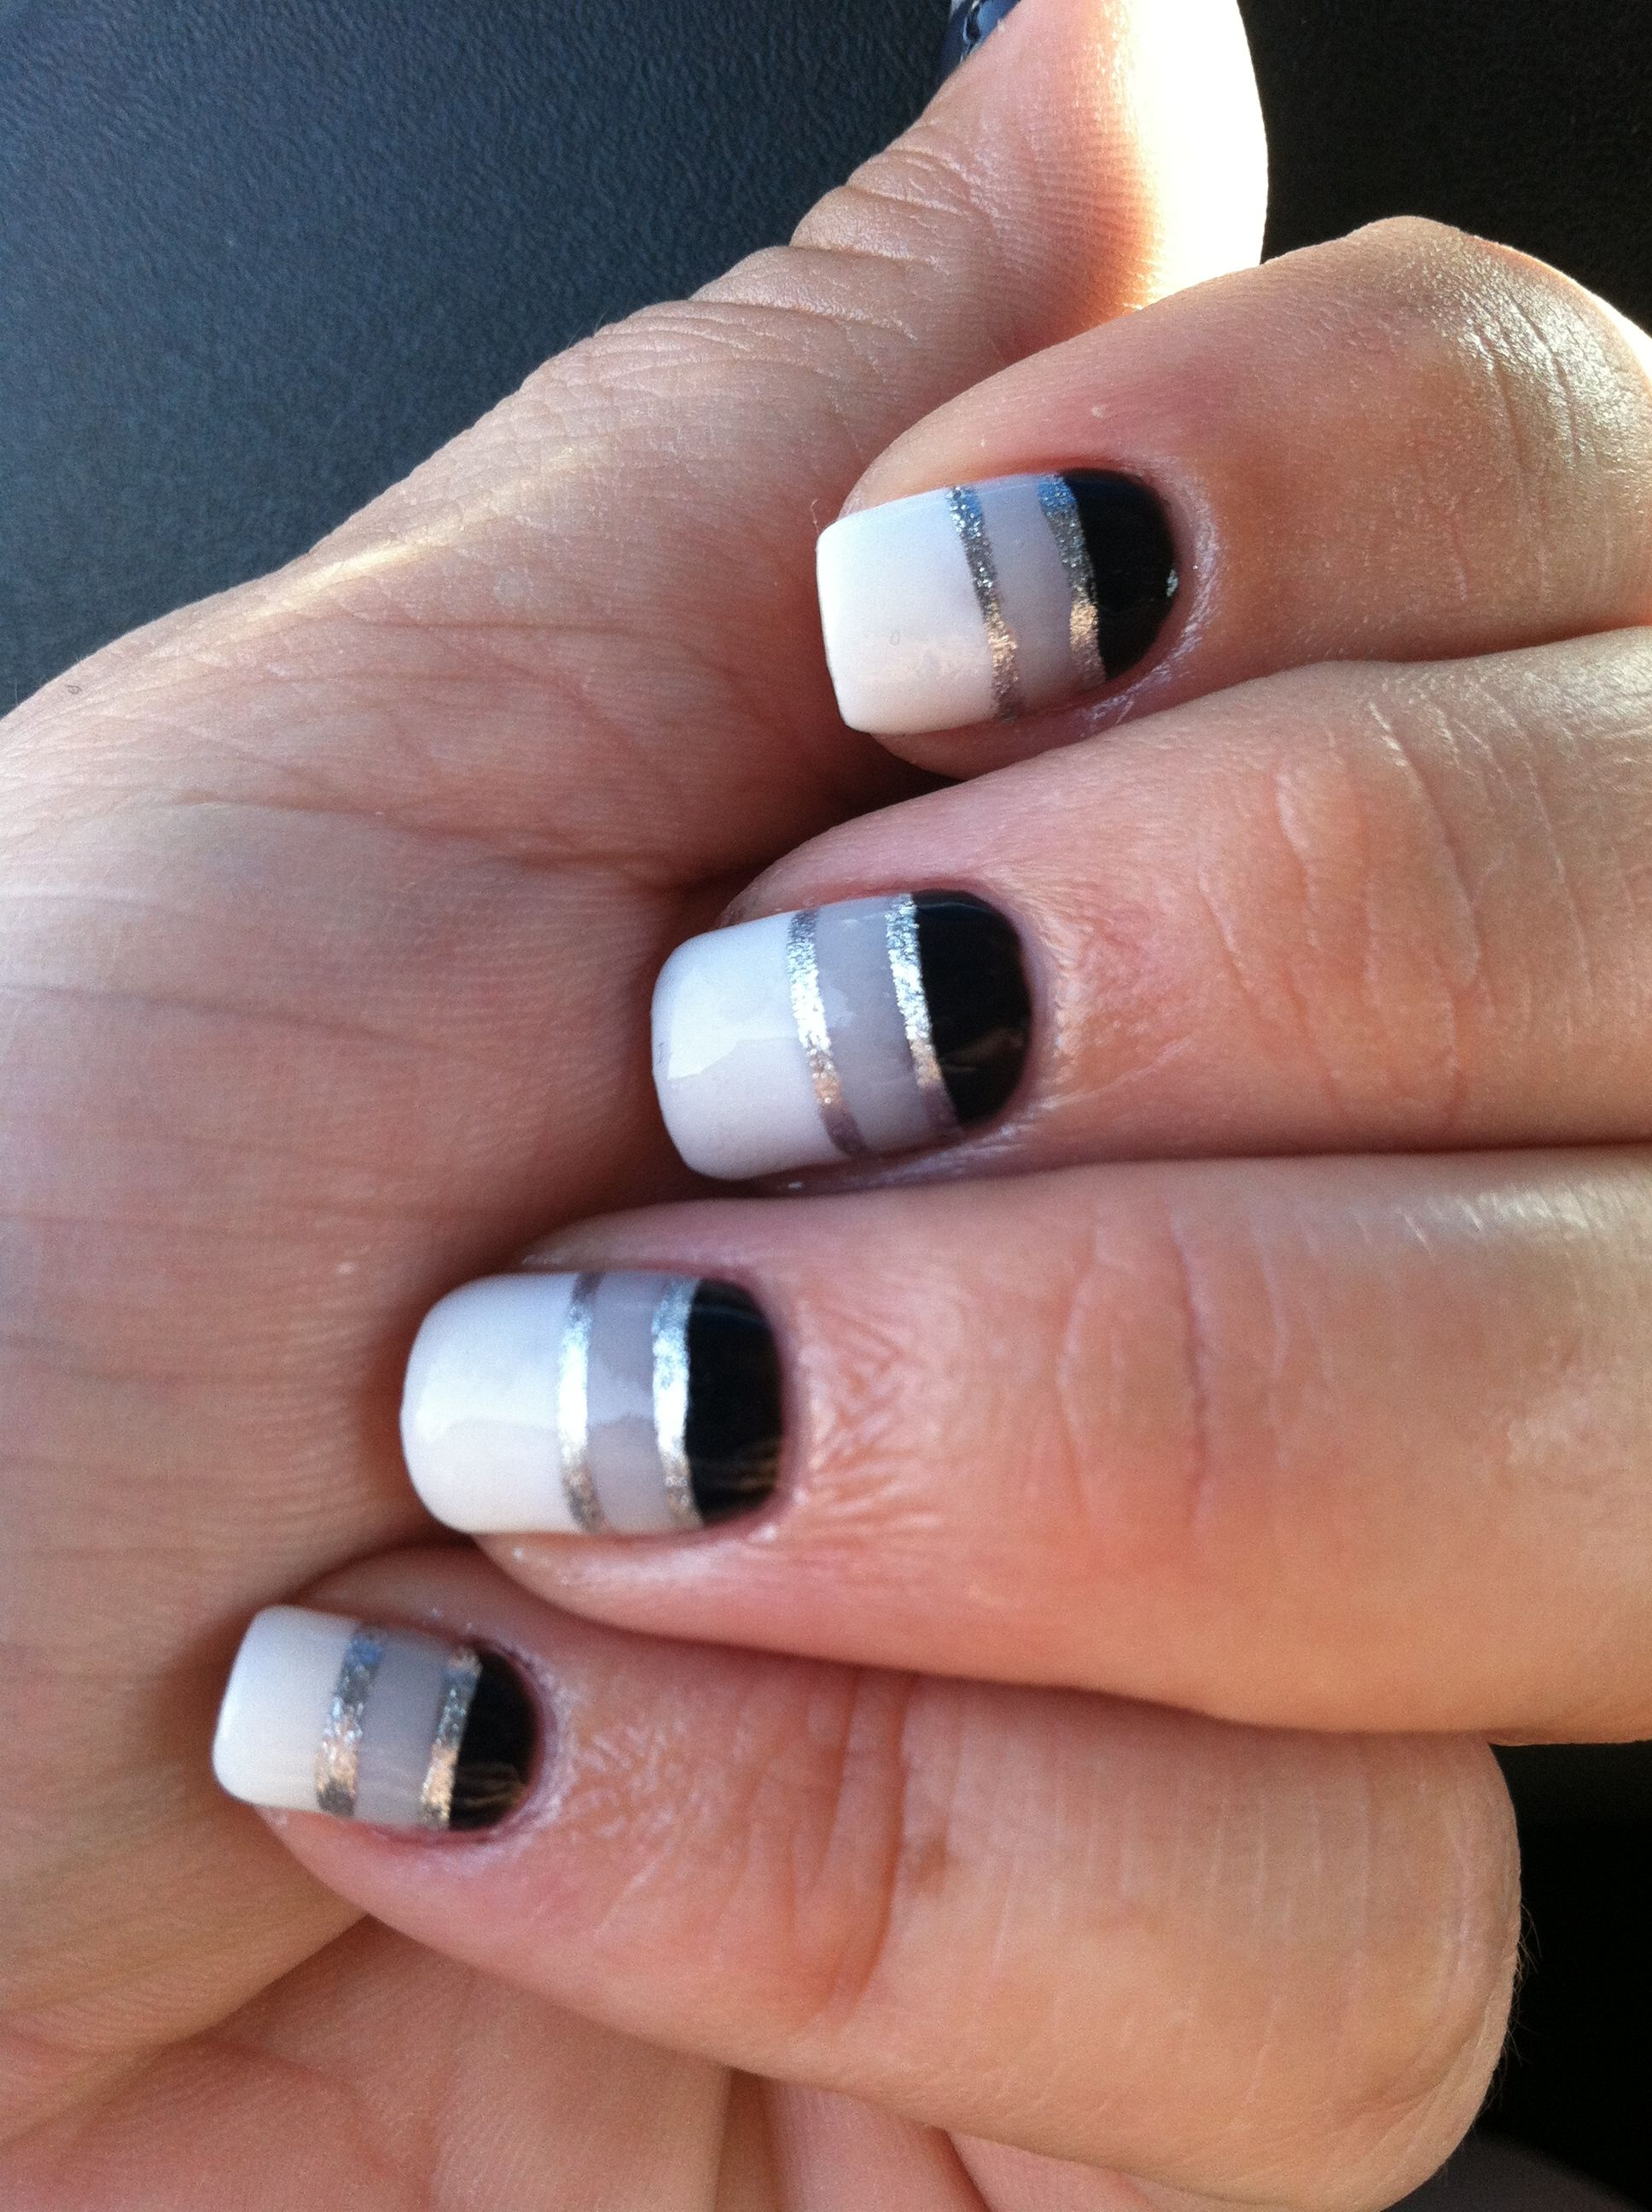 My new gel manicure design for the week- my girl hooks me up! Loved ...